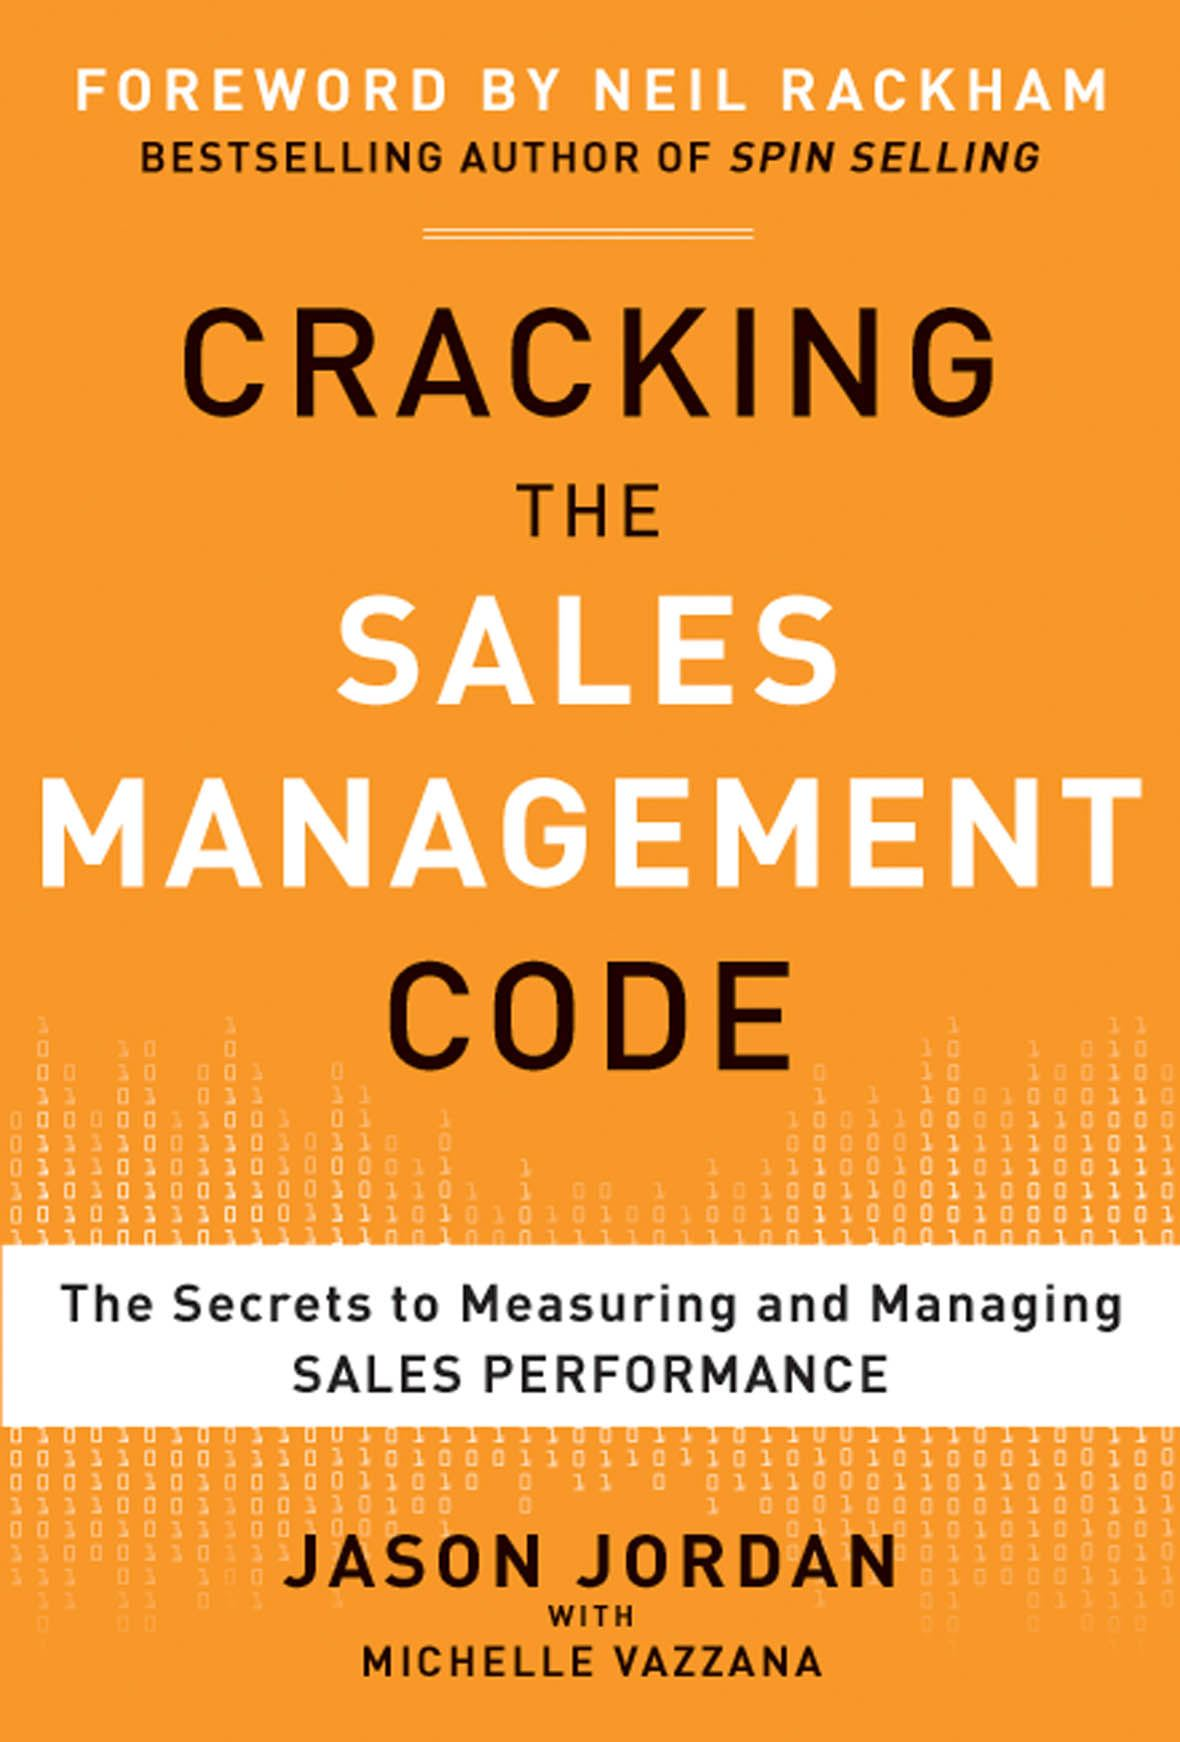 Cracking the Sales Management Code: The Secrets to Measuring and Managing Sales Performance (EBOOK) By: Jason Jordan,Michelle Vazzana